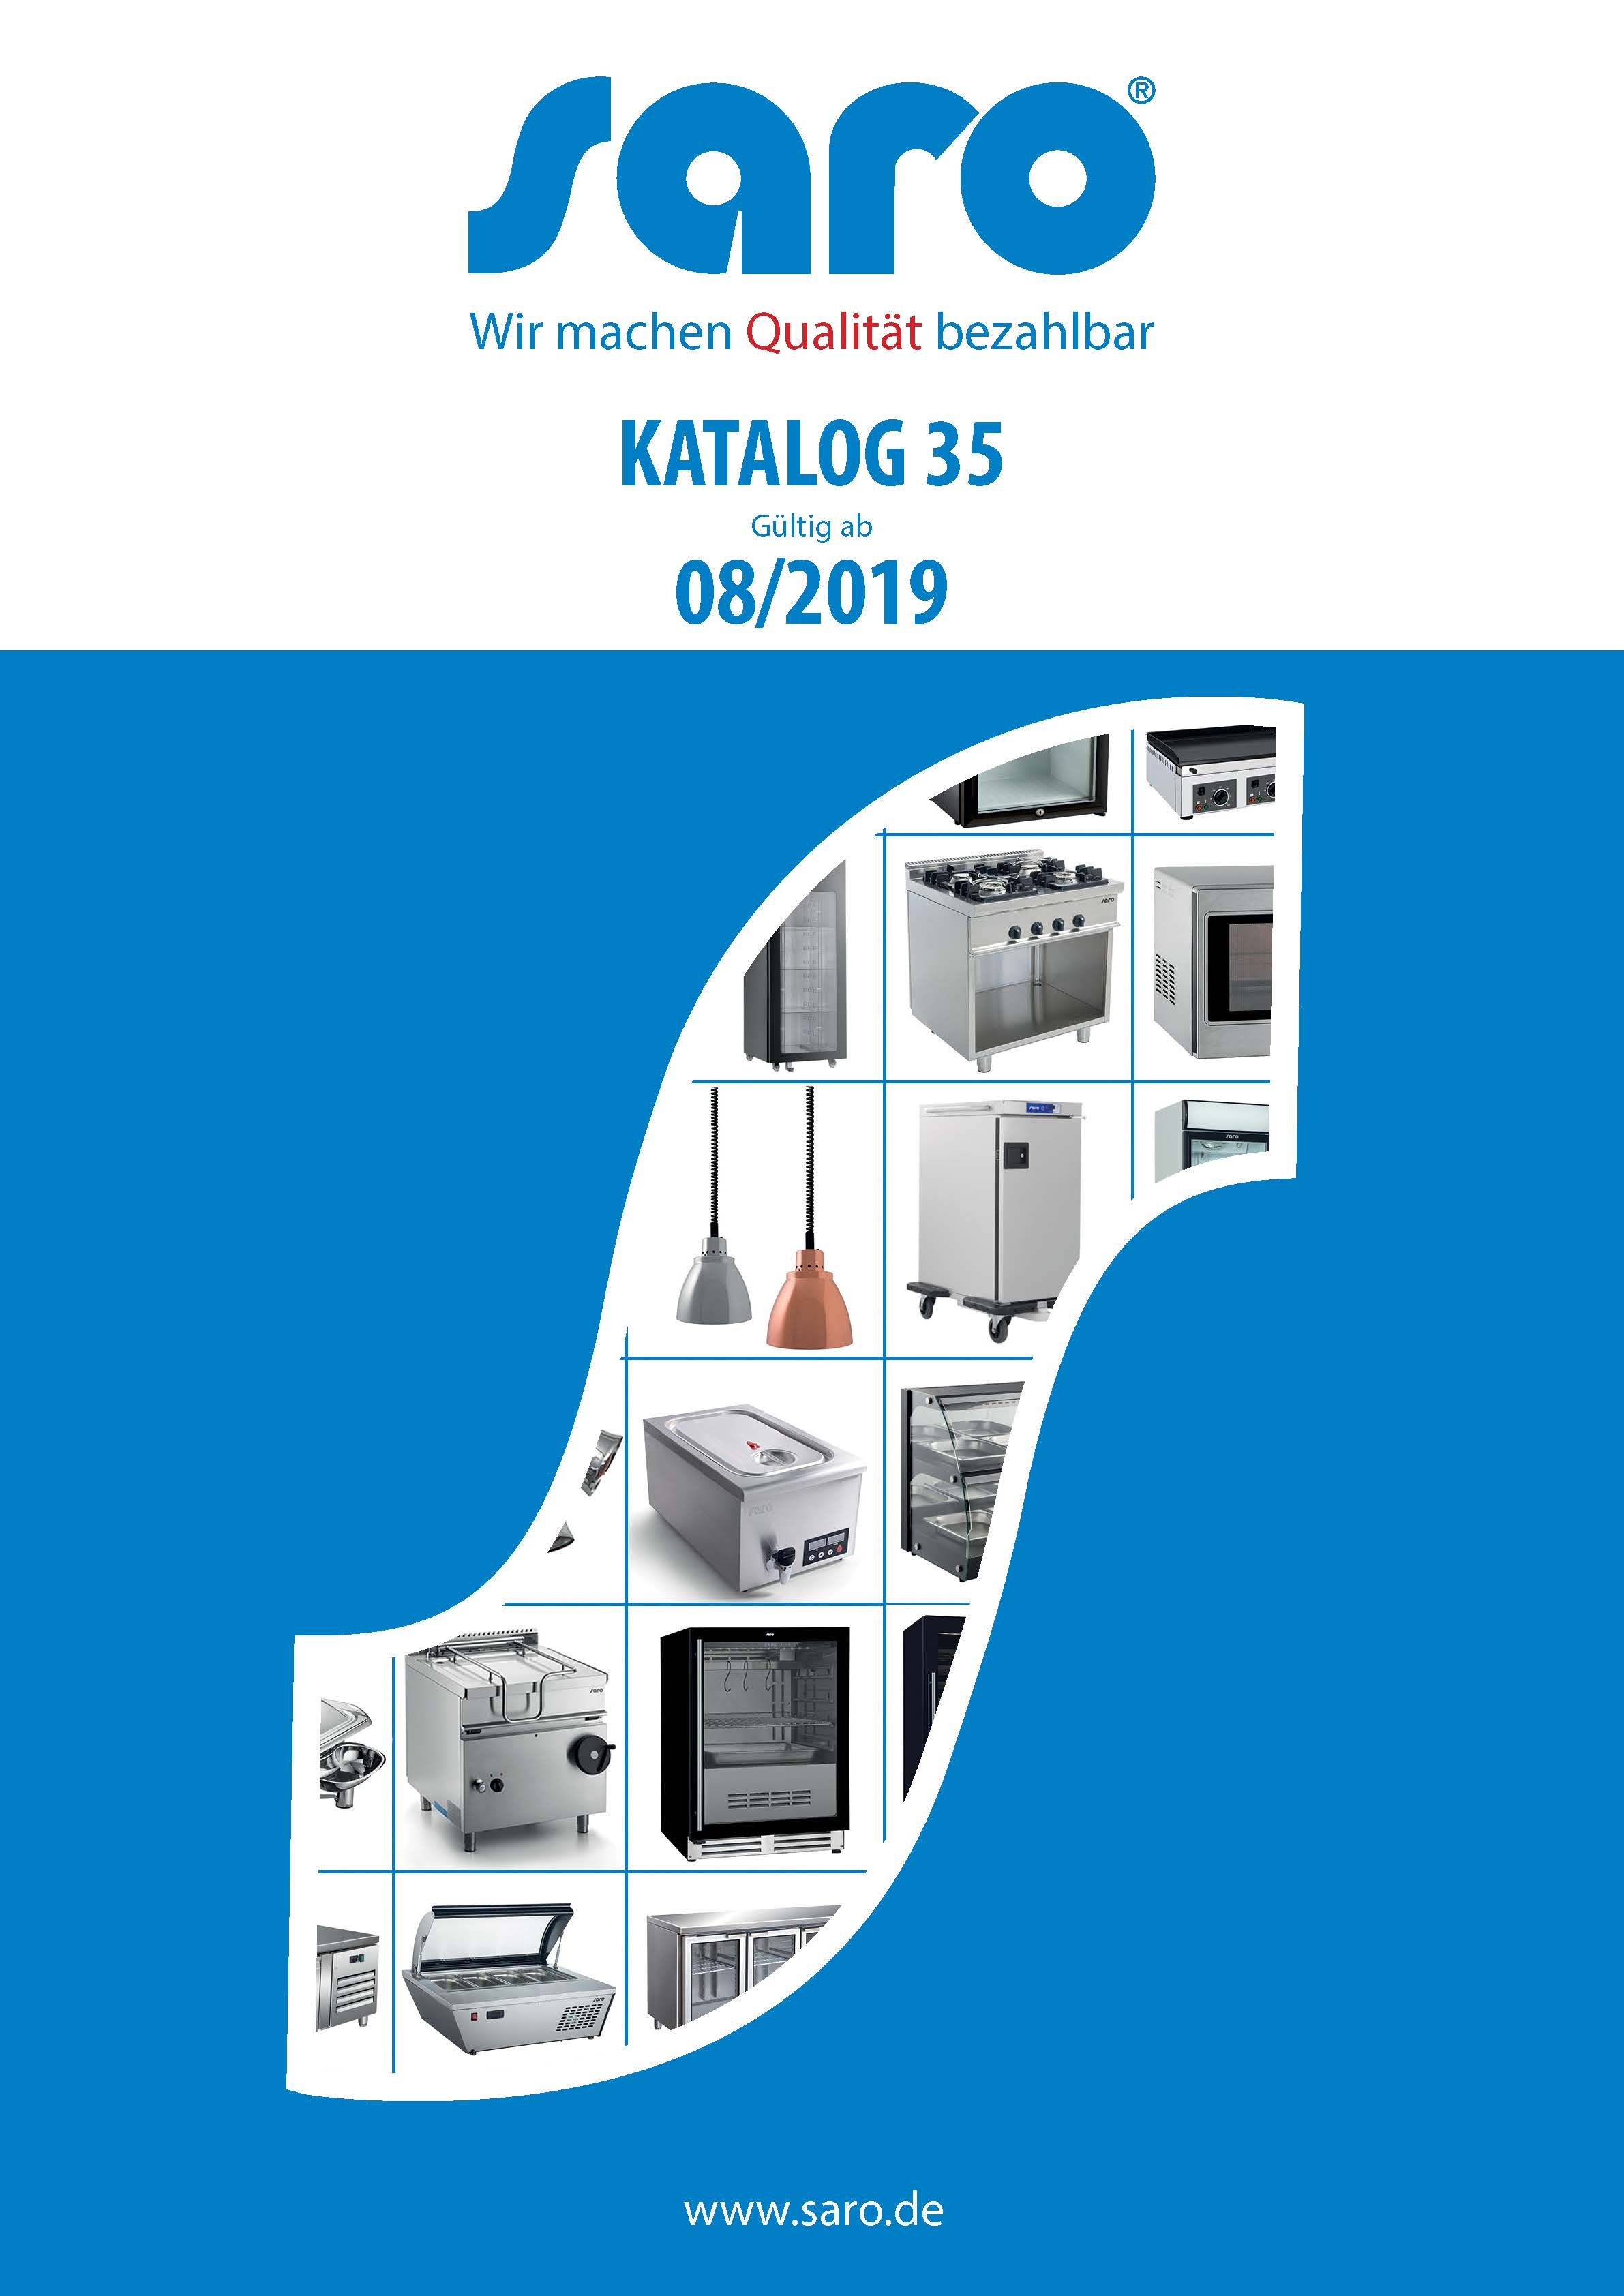 Saro catalogue nr. 35